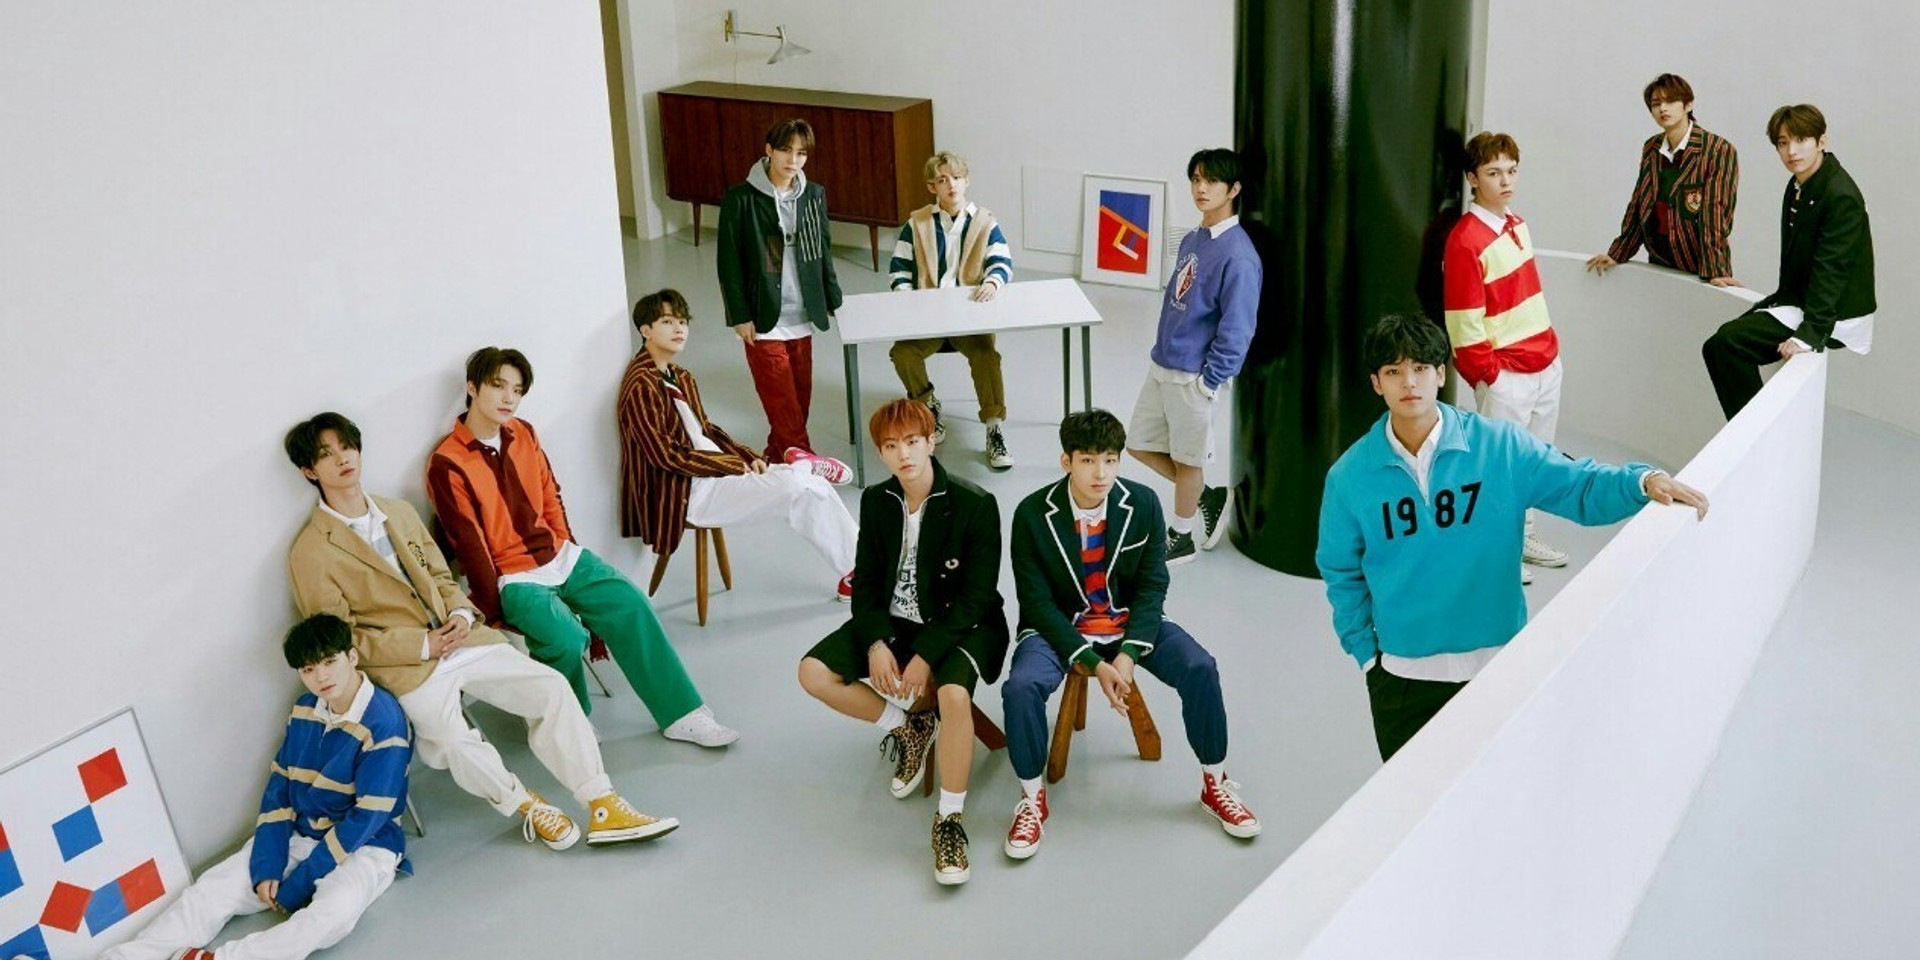 SEVENTEEN to hold online concert 'IN-COMPLETE', here's what you need to know about the show